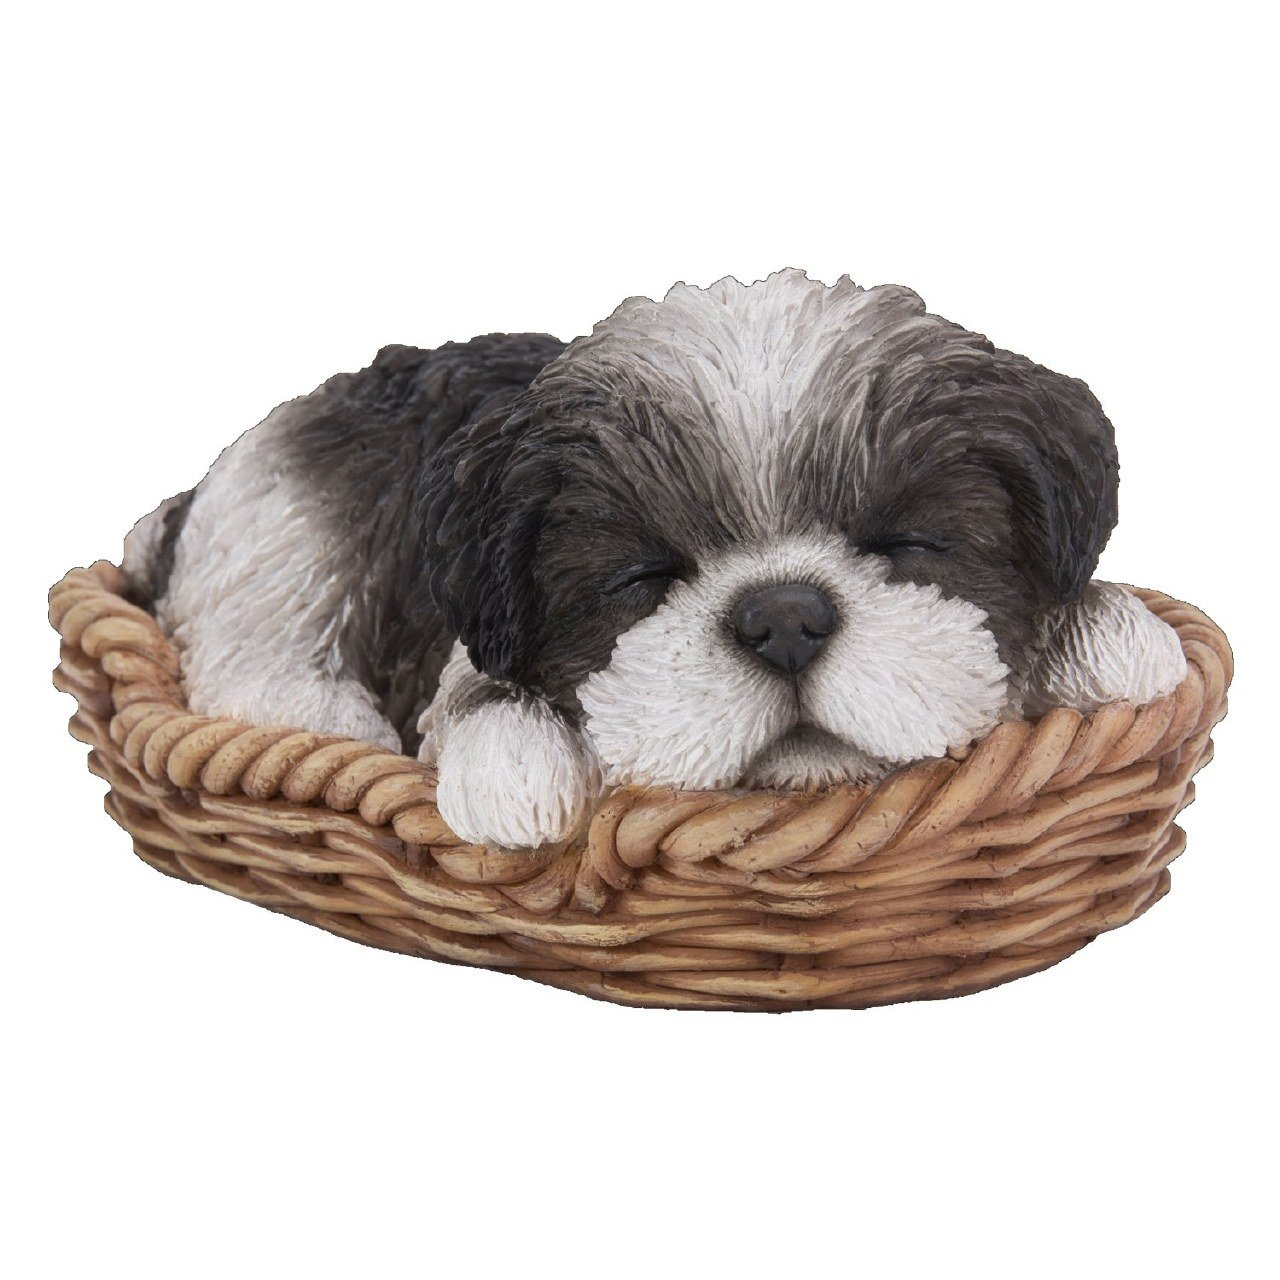 Sleeping Pet Pals Vivid Arts Black Shih Tzu Pup